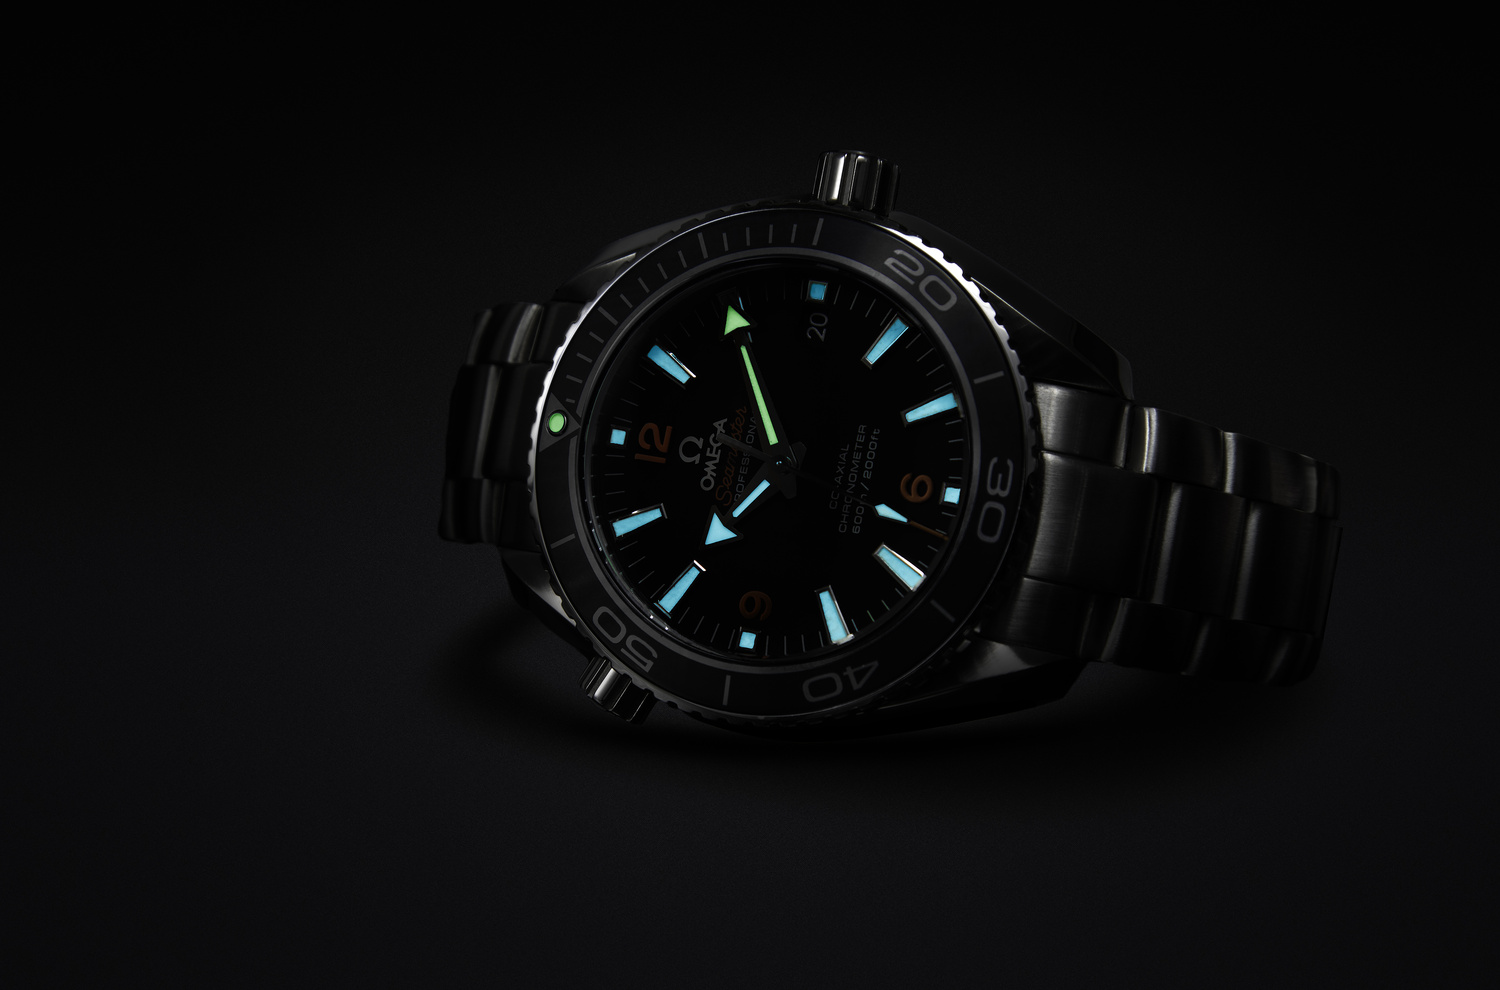 Omega commercial lume shot by Luca Russo